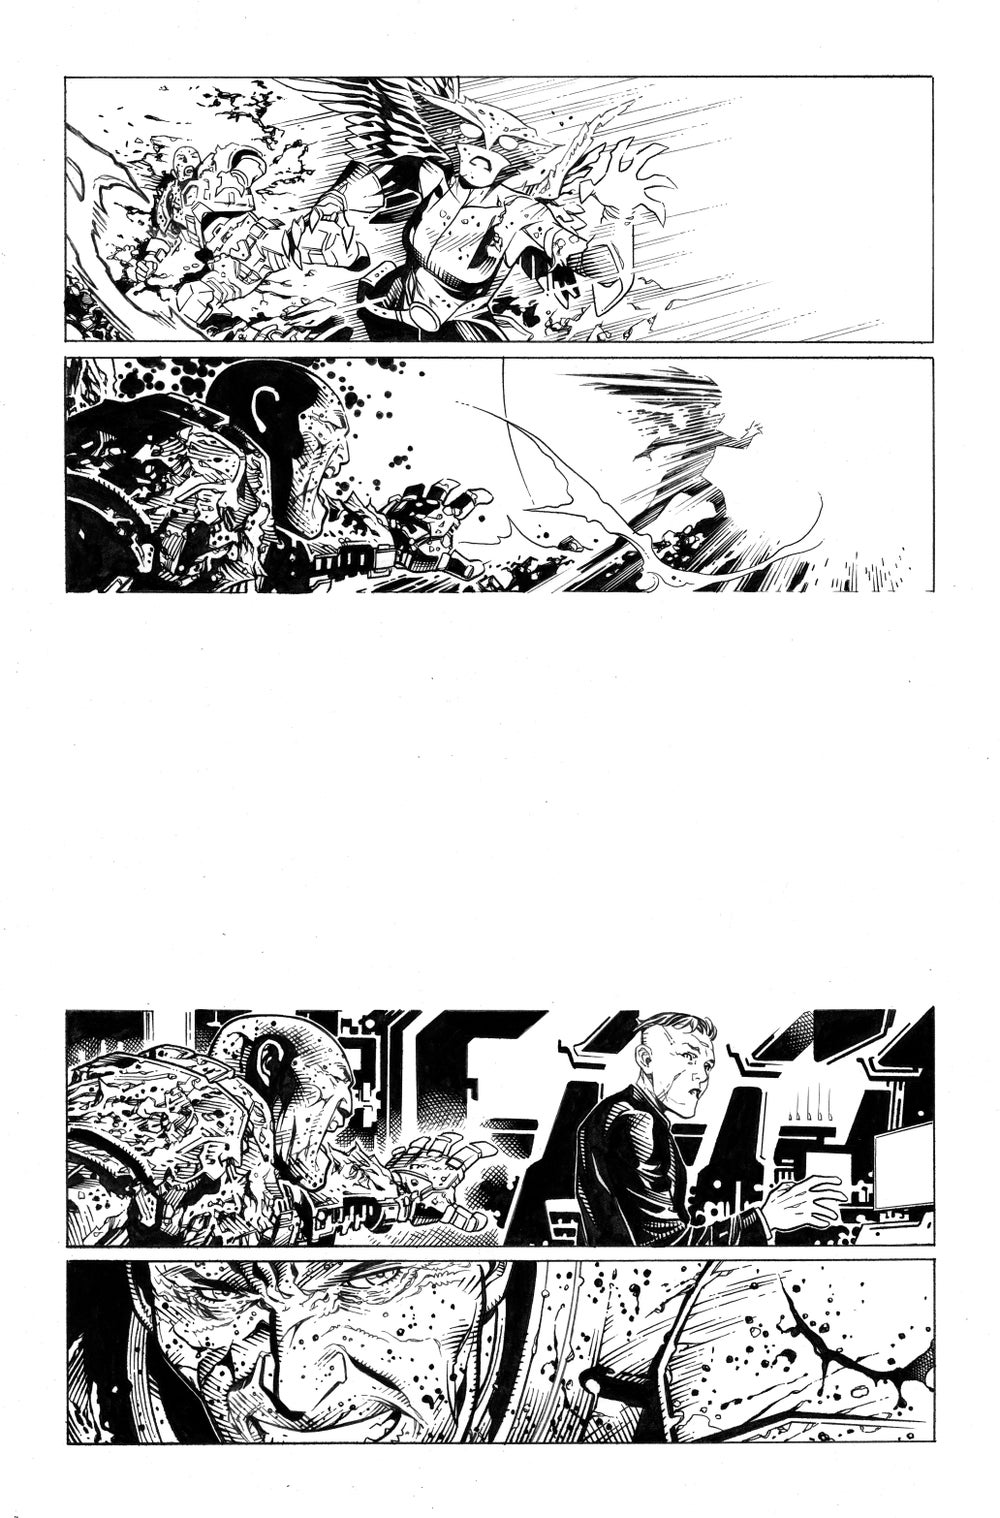 Image of JUSTICE LEAGUE #7 Page 13